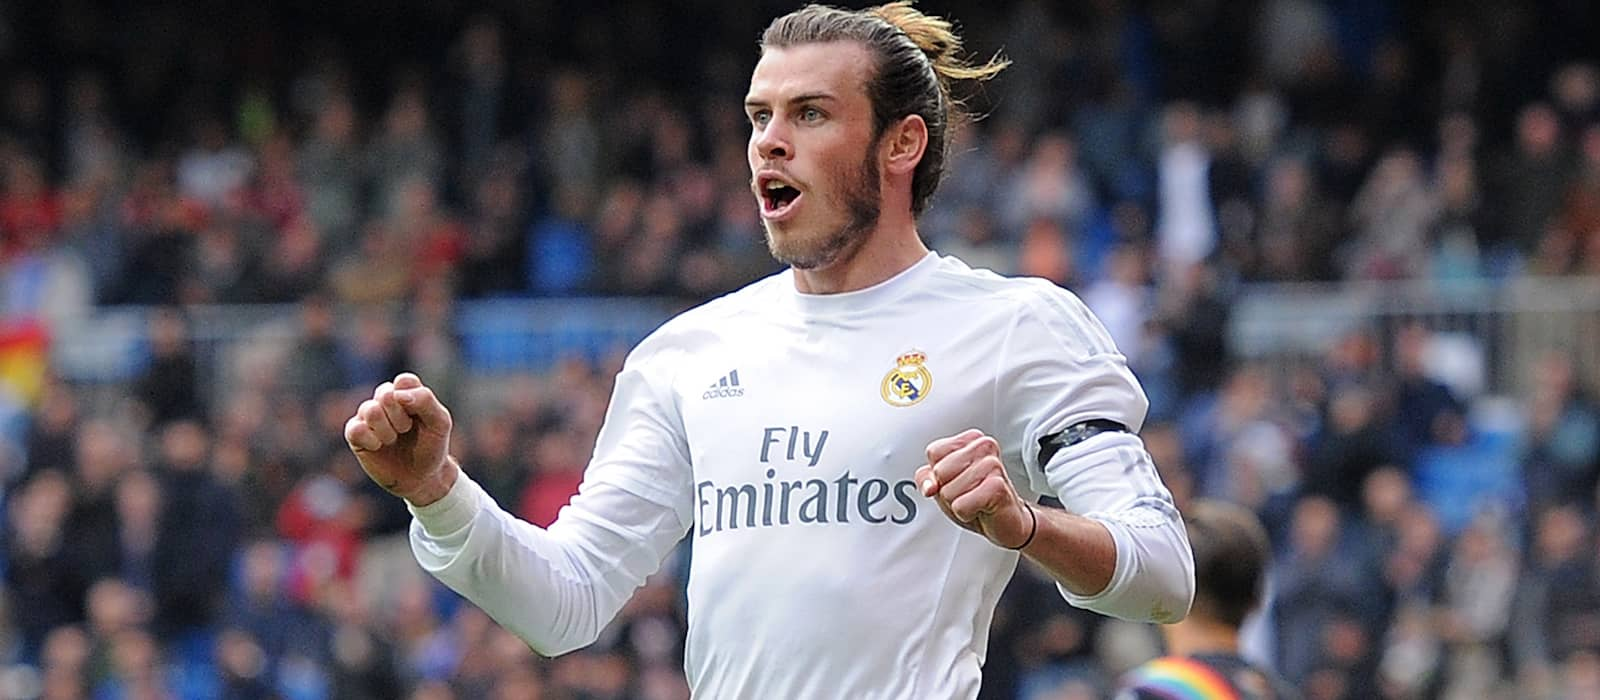 Manchester United target Gareth Bale eyeing Premier League return next summer – report